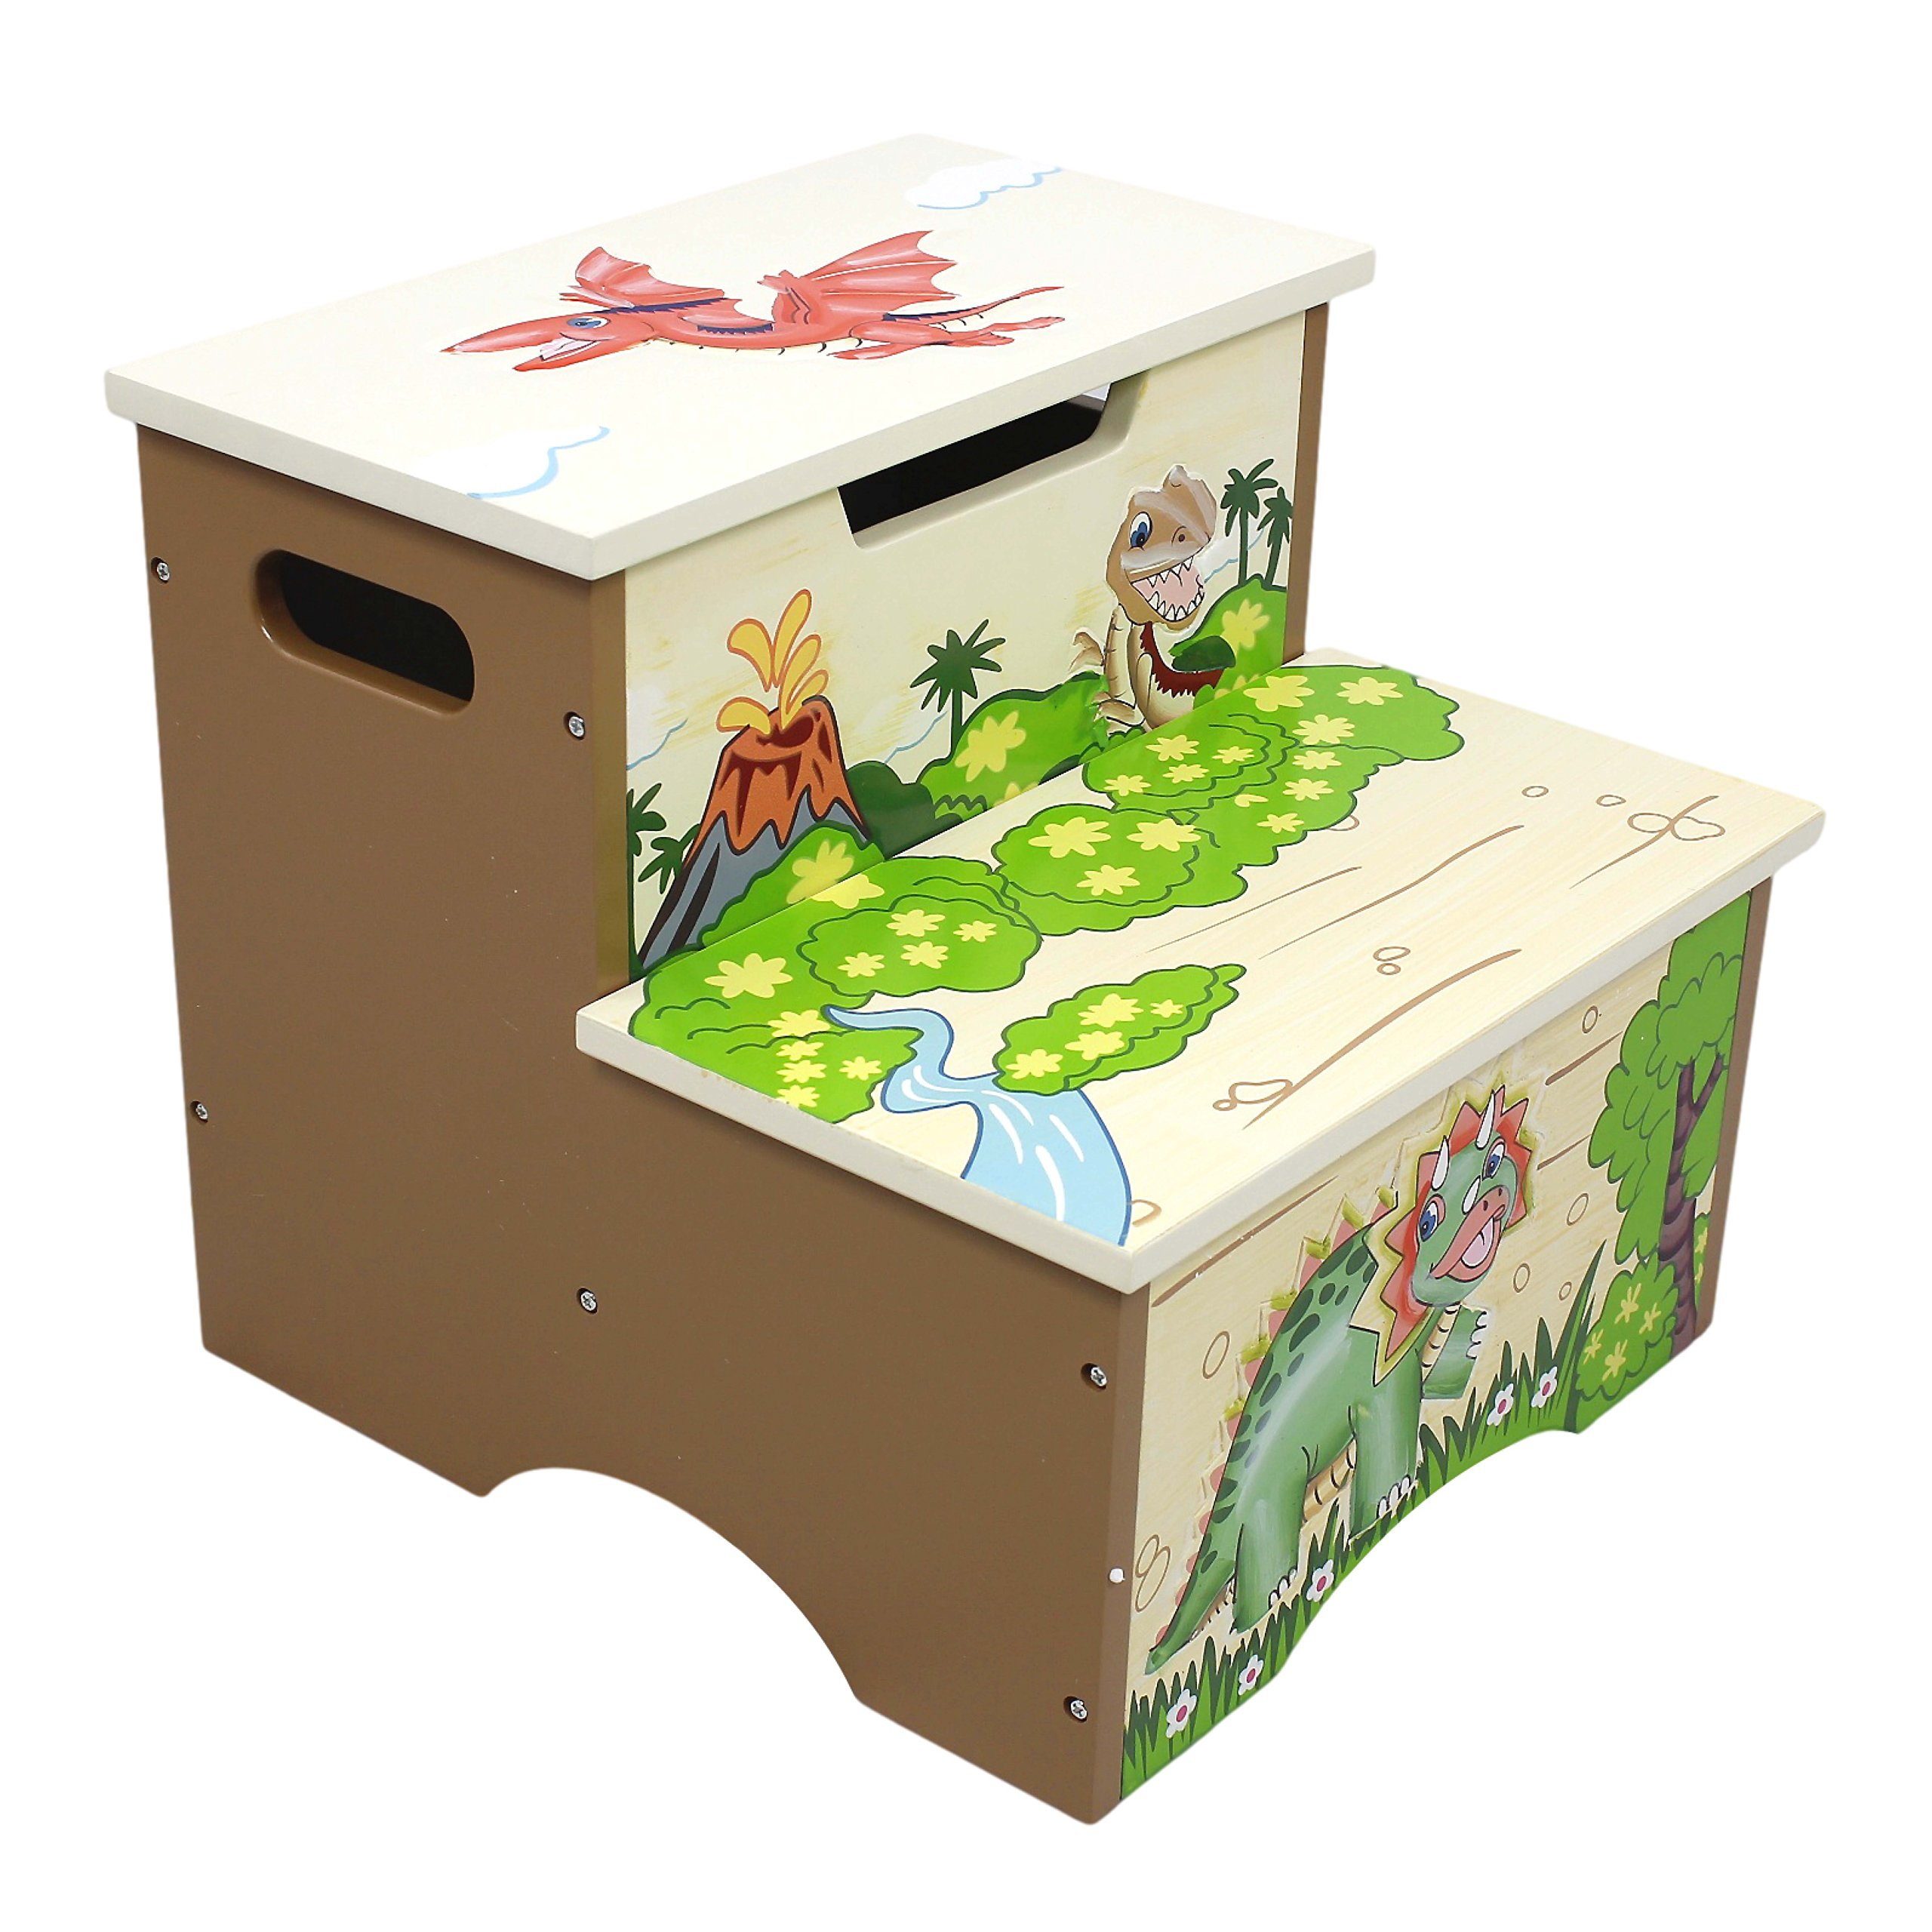 Teamson Kids Wooden Step Stool With Storage Dinosaur Kingdom Room Collection